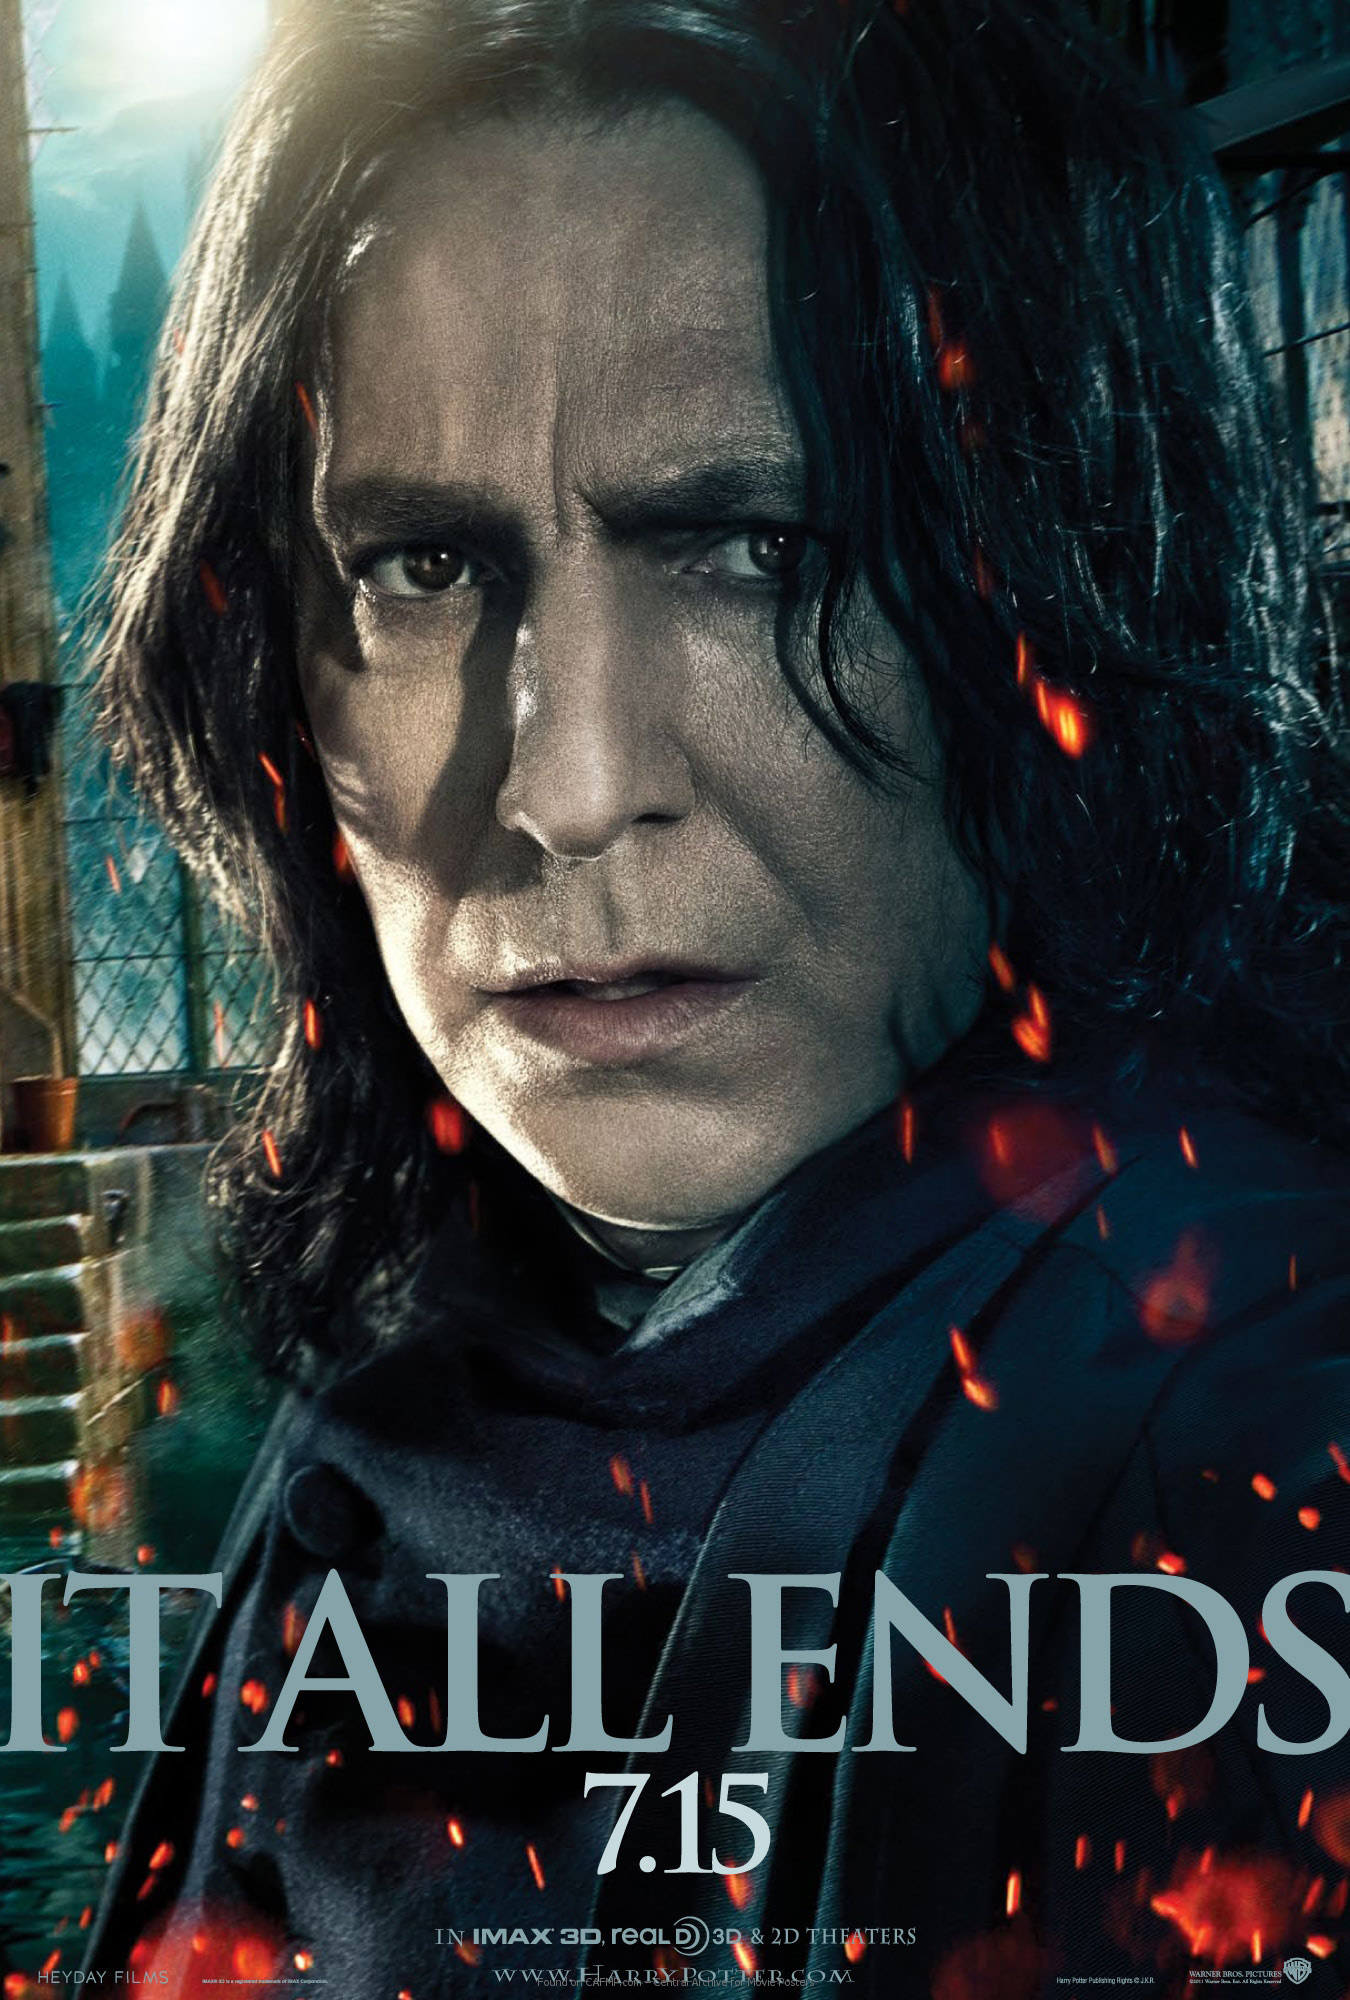 'Deathly Hallows: Part 2' Snape poster #2